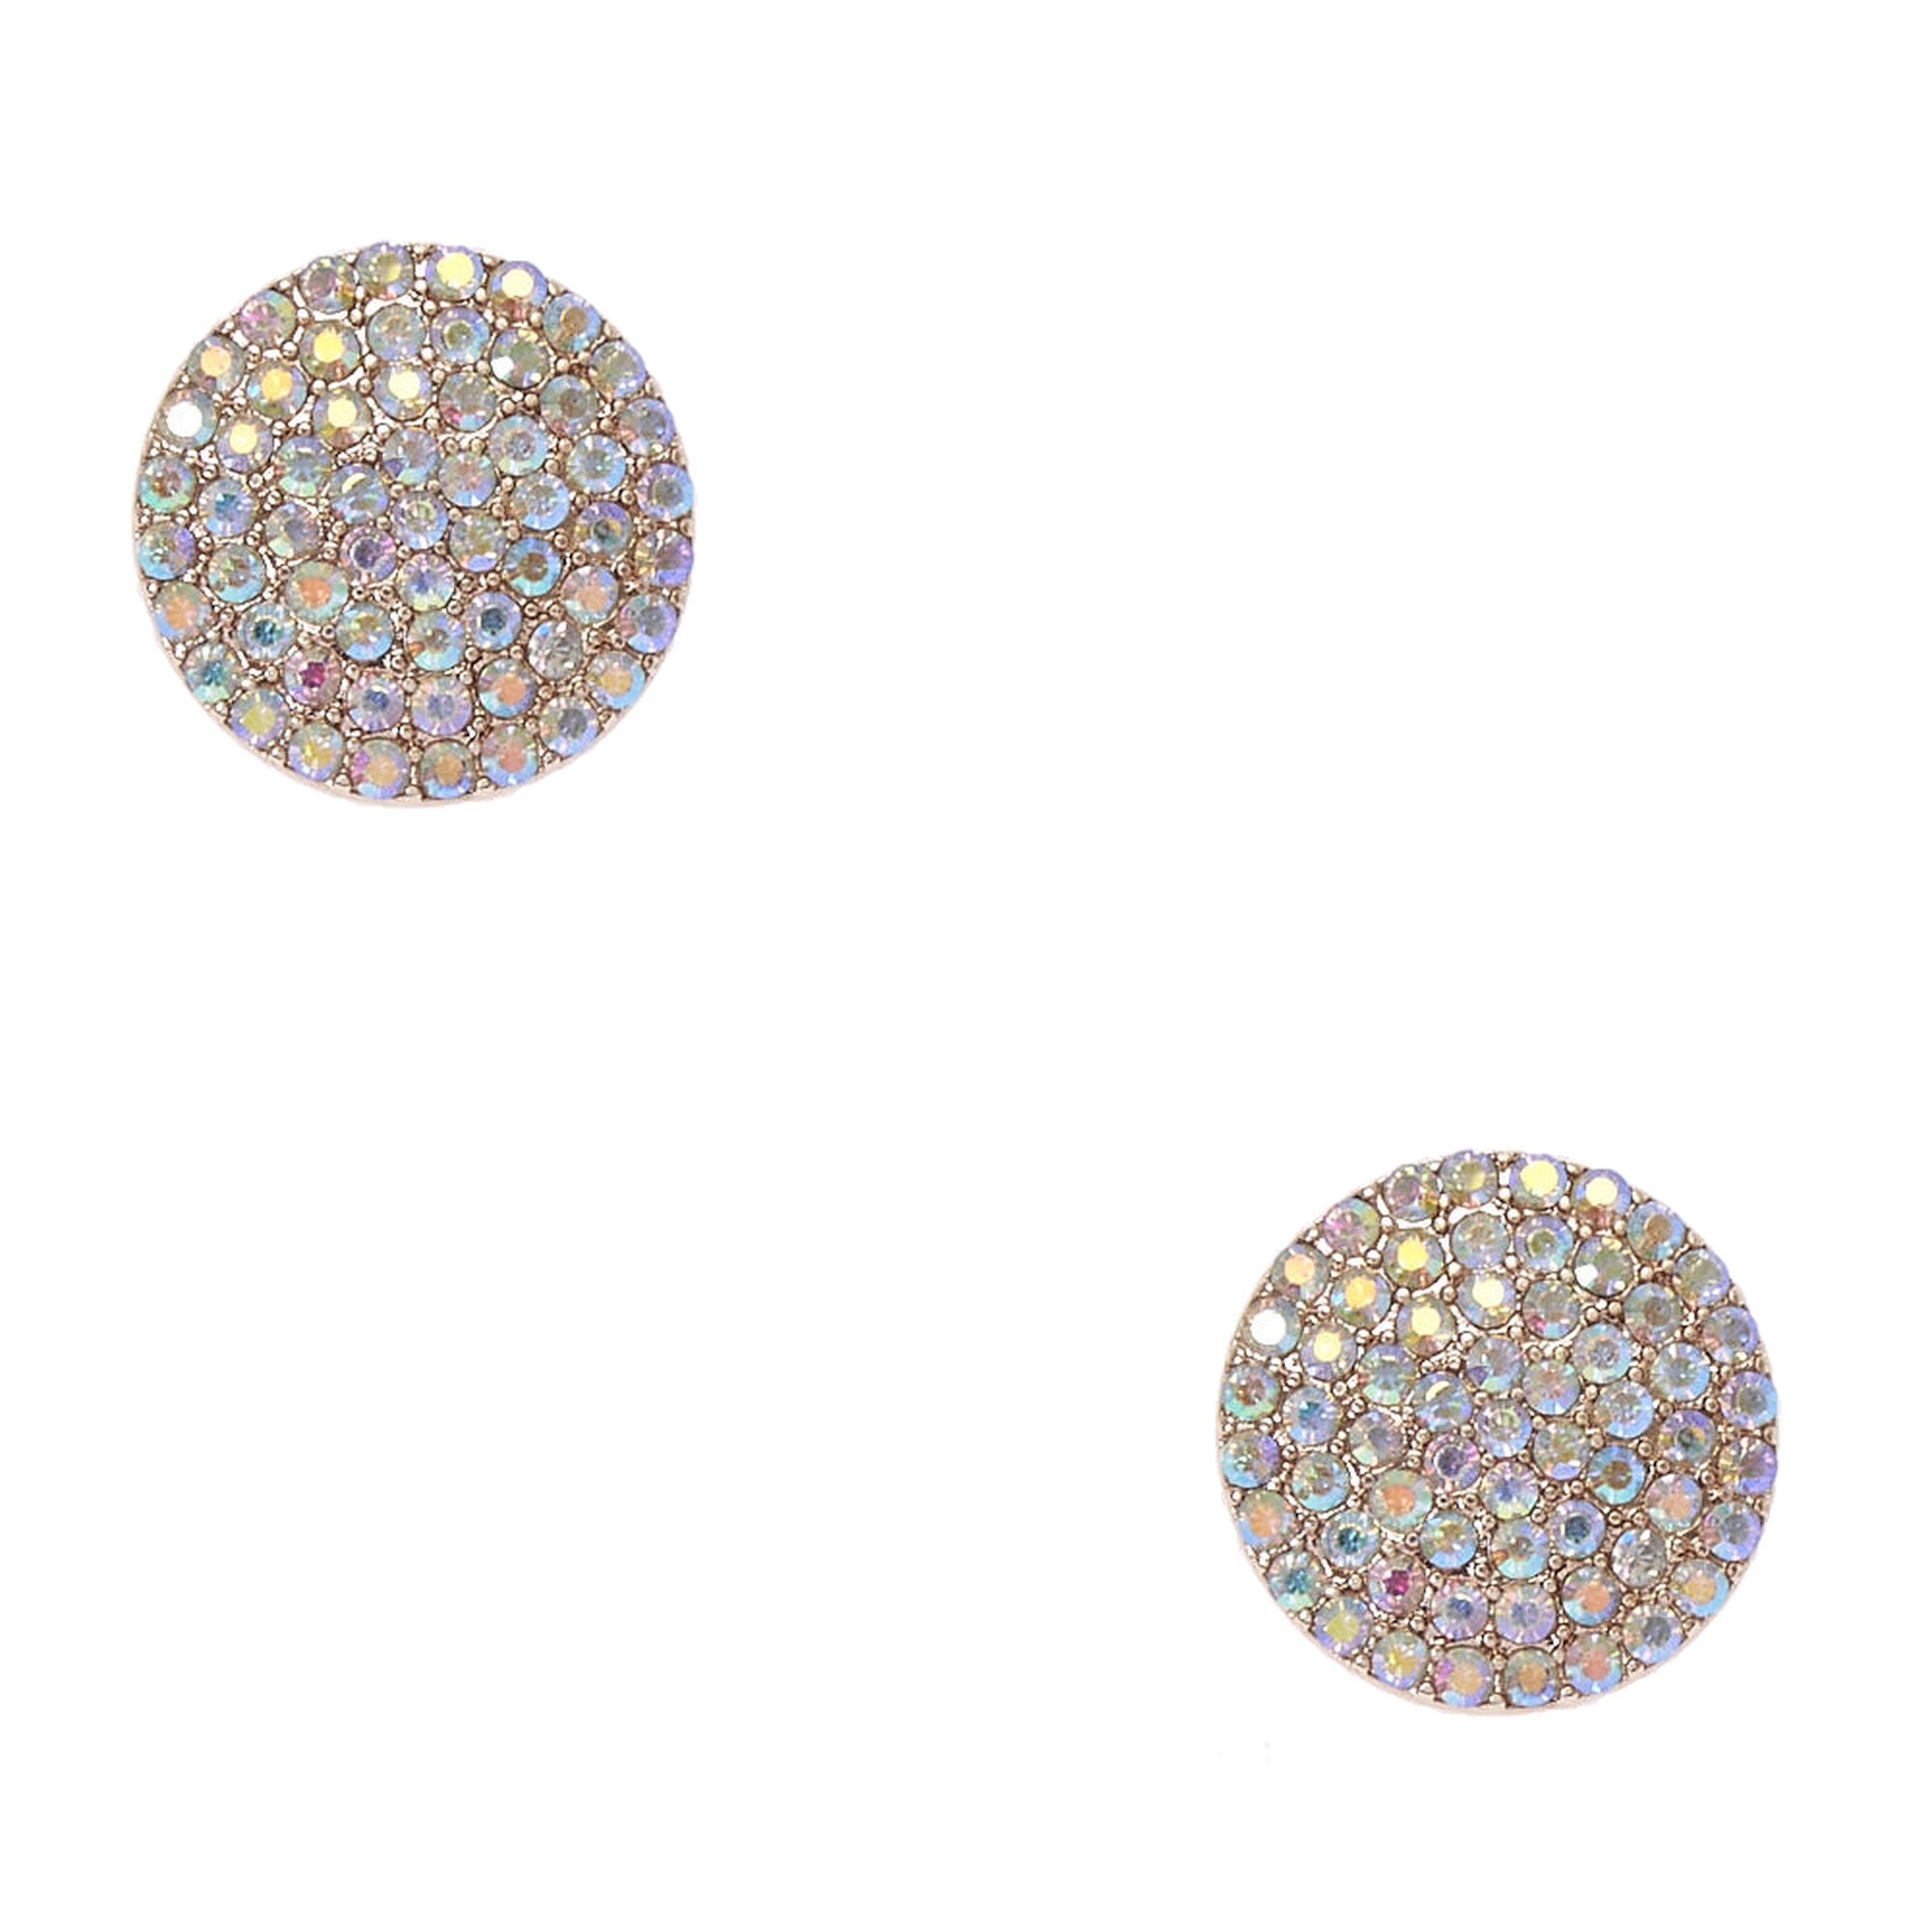 isabel loading marant stud by moda operandi crystal silver holly tone earrings large